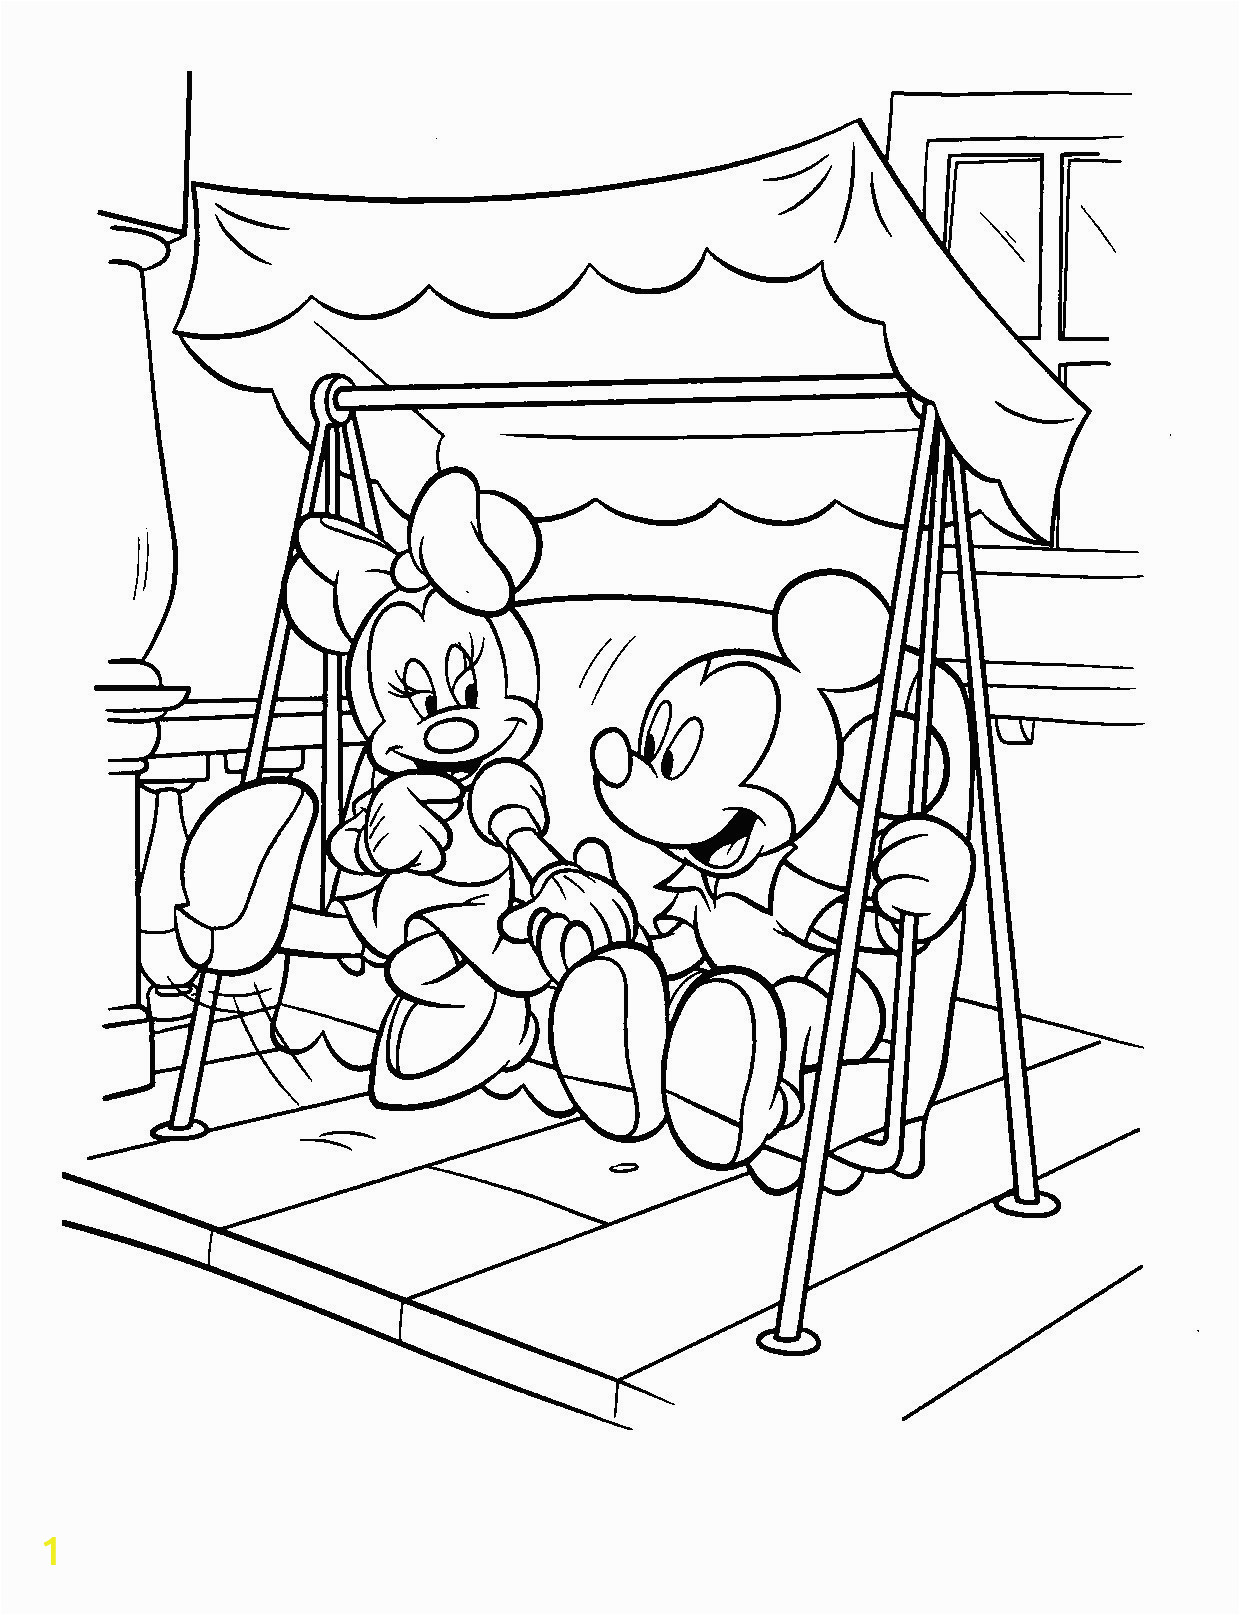 minnie mouse halloween coloring page new gallery mickey mouse and pluto coloring pages awesome baby minnie mouse of minnie mouse halloween coloring page